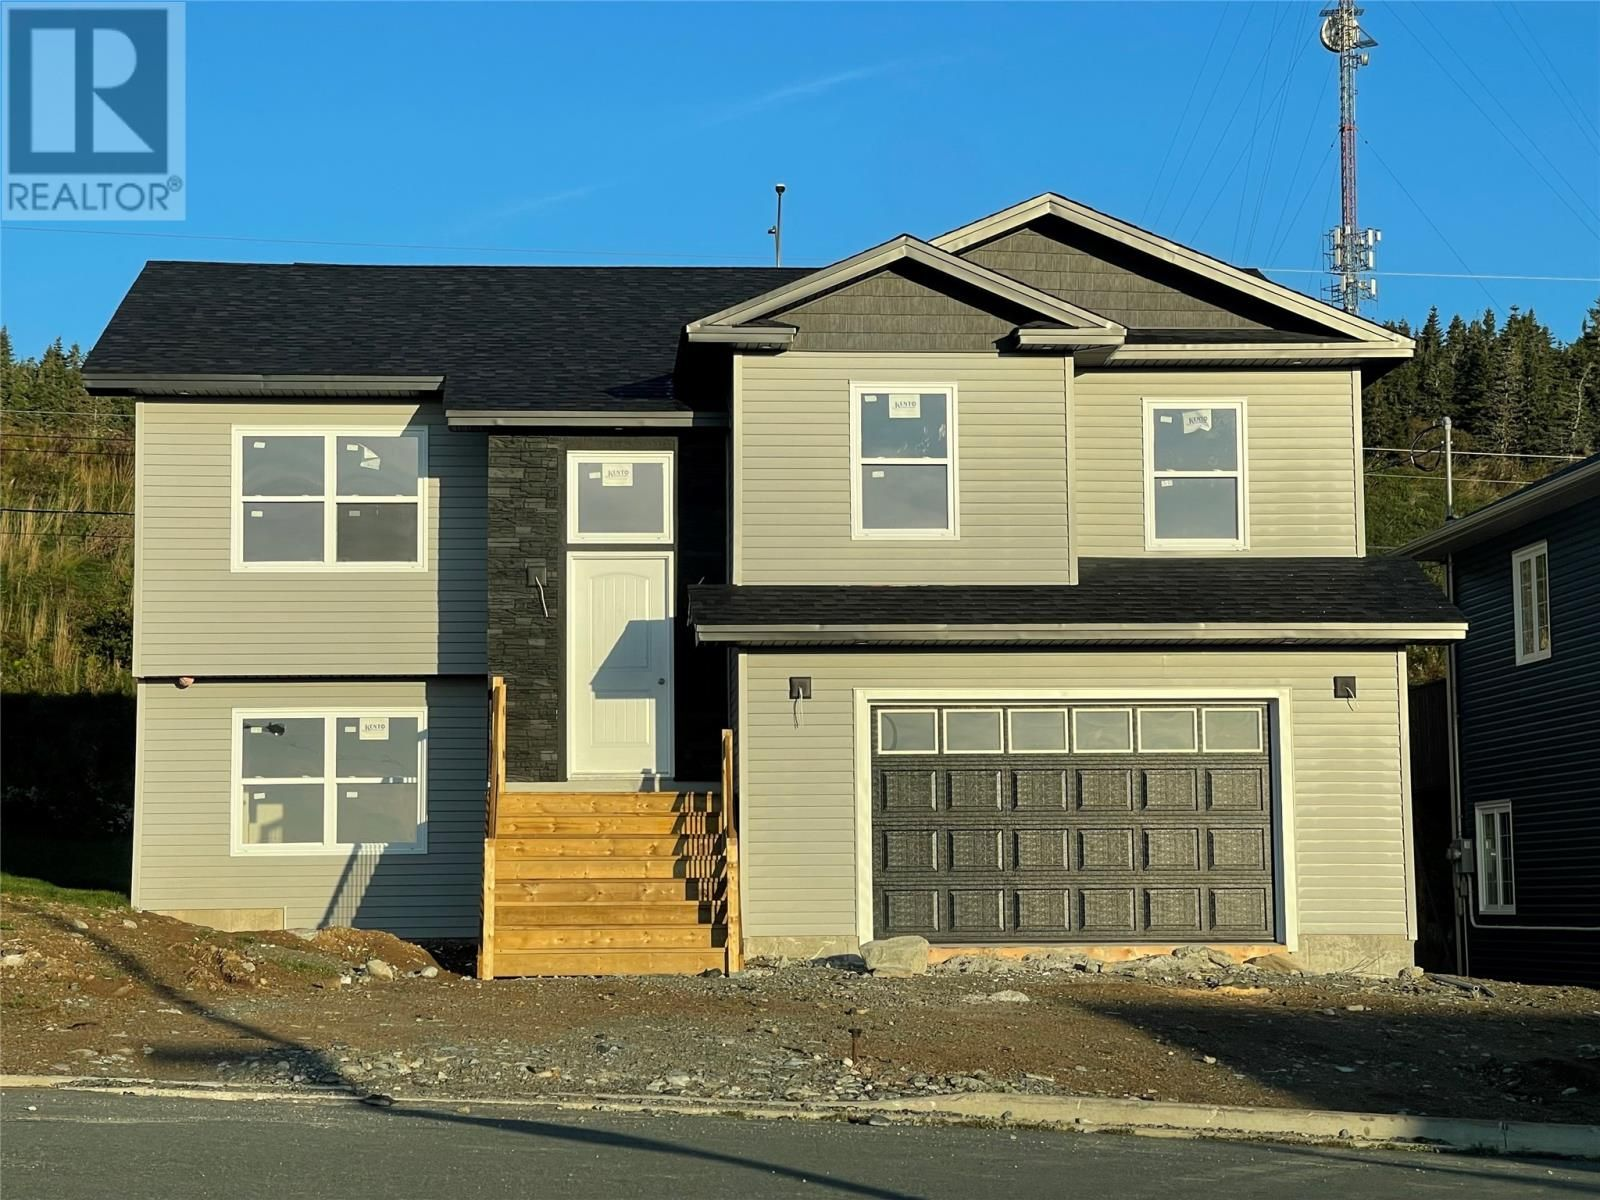 Main Photo: 38 Willenhall Place in St. John's: House for sale : MLS®# 1237869